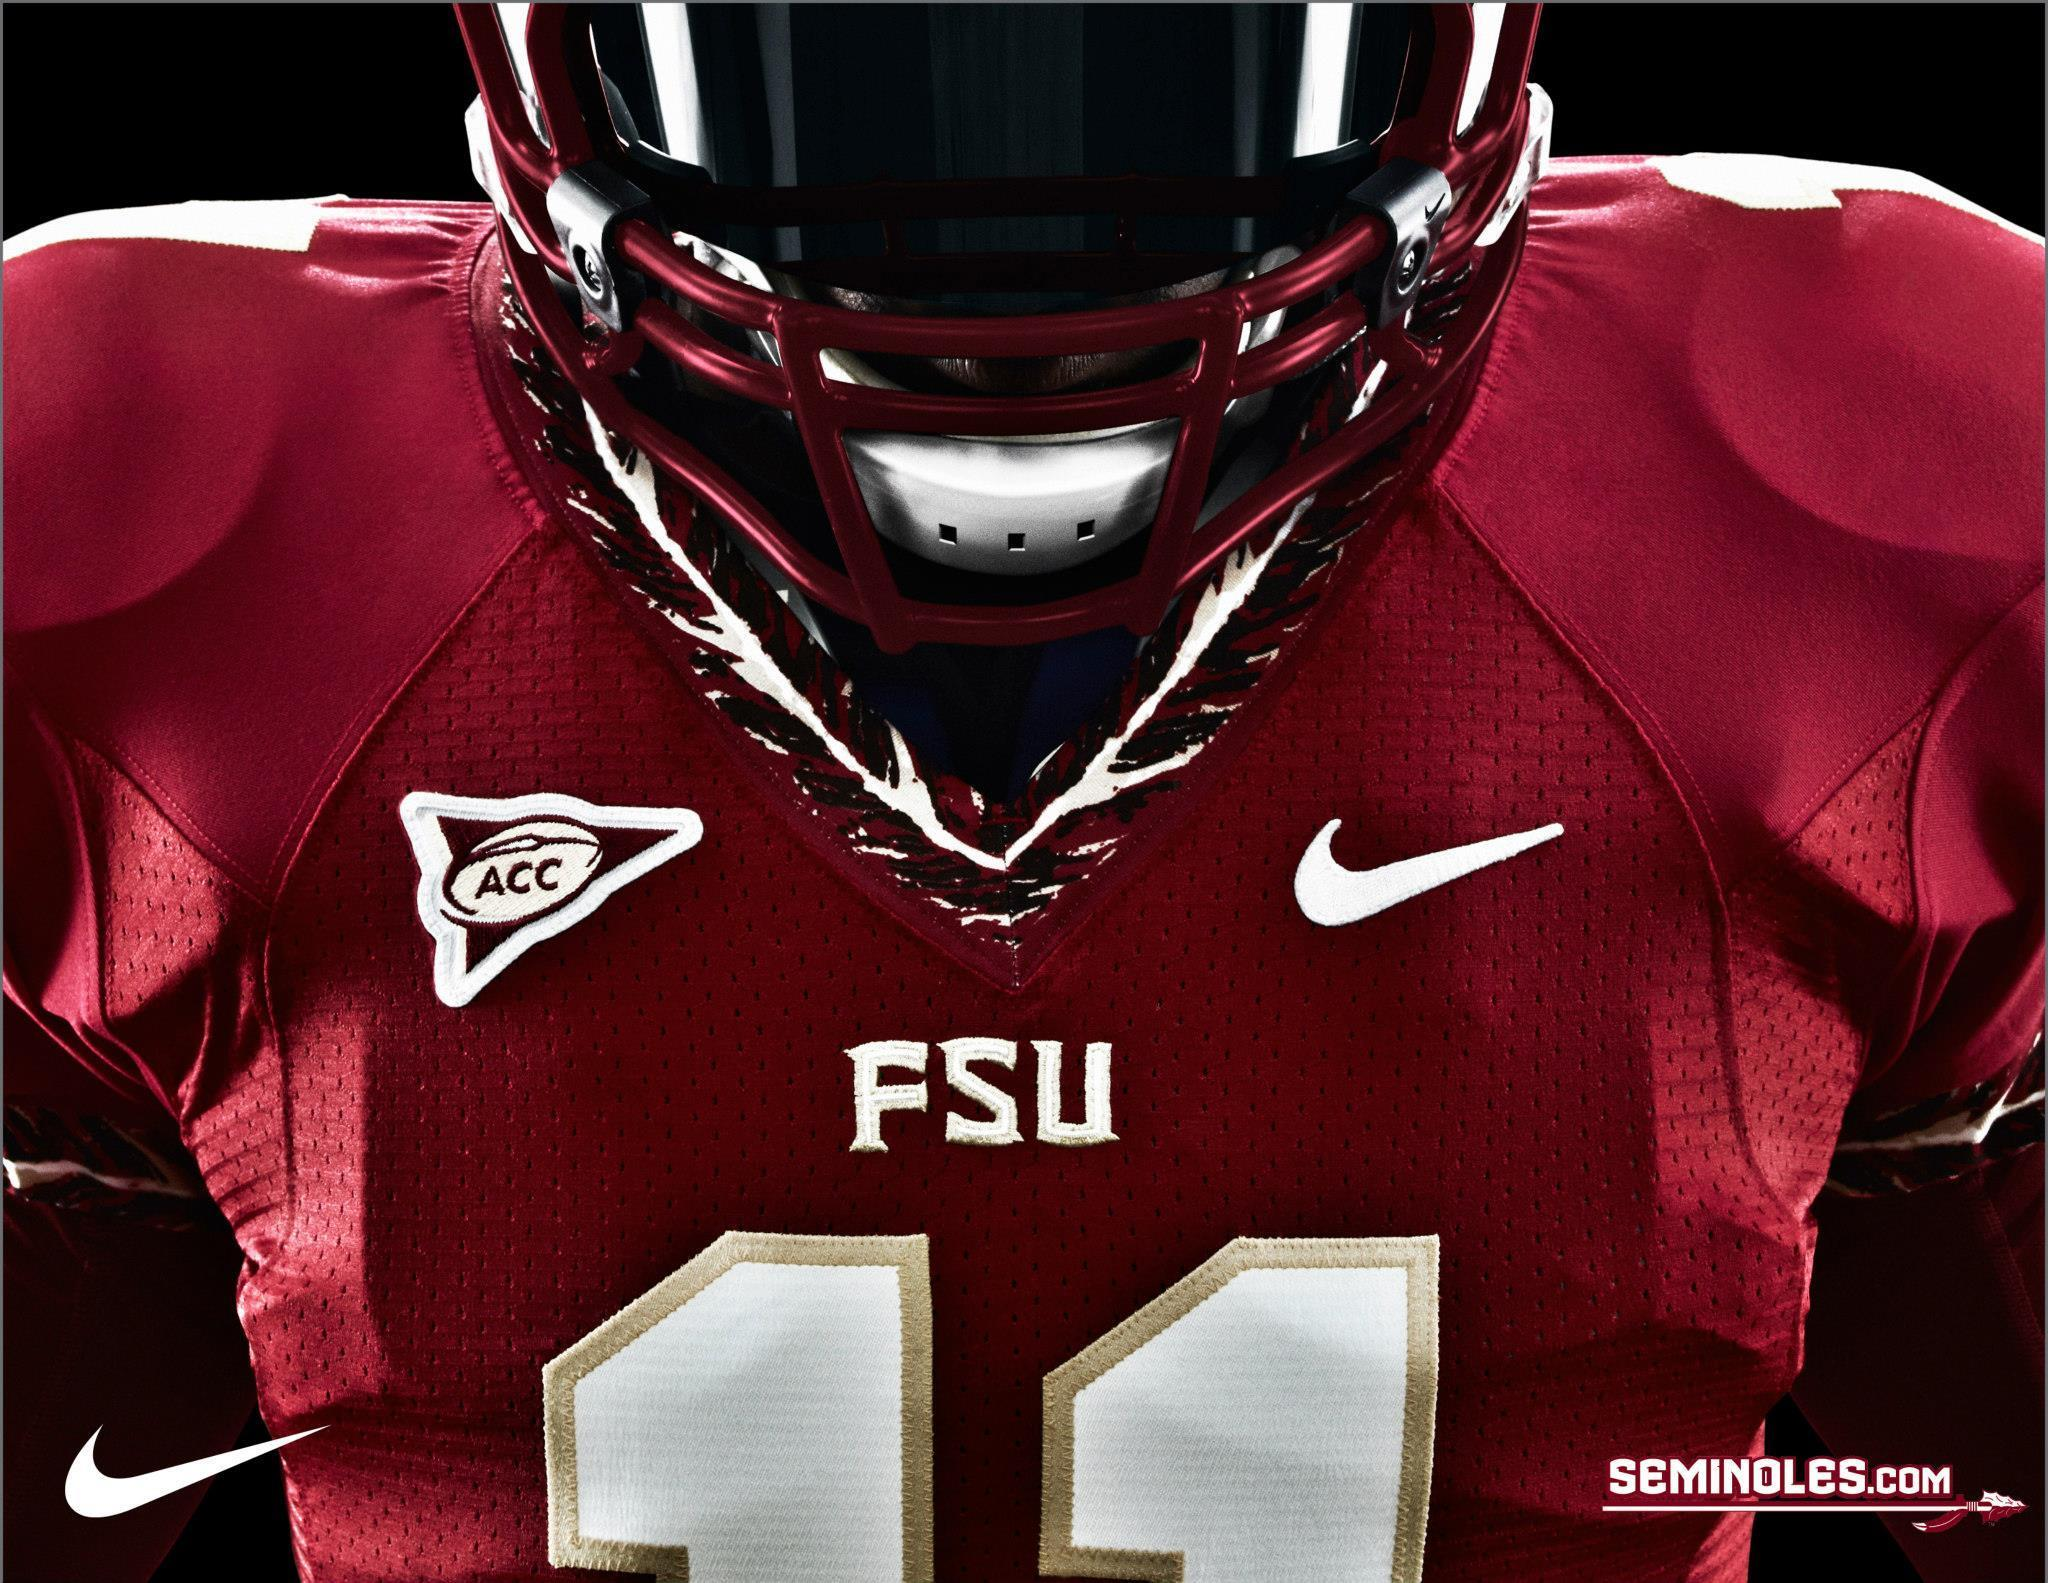 Caveman Show Fsu : College football wallpapers wallpaper cave